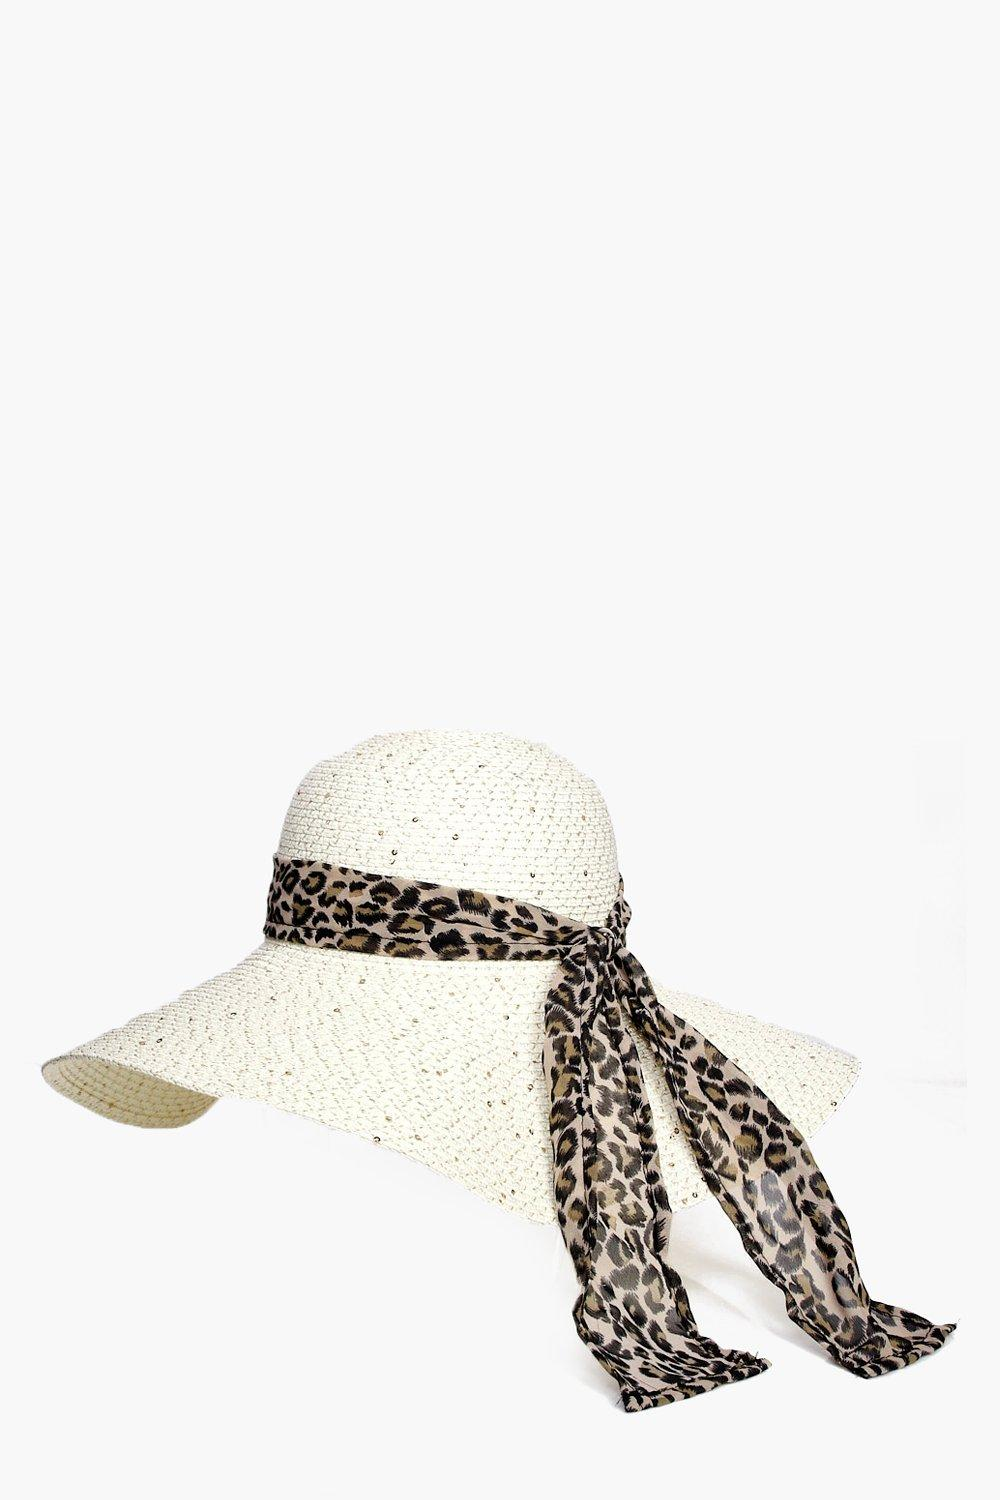 Sequin & Leopard Straw Floppy Hat - natural - Lace